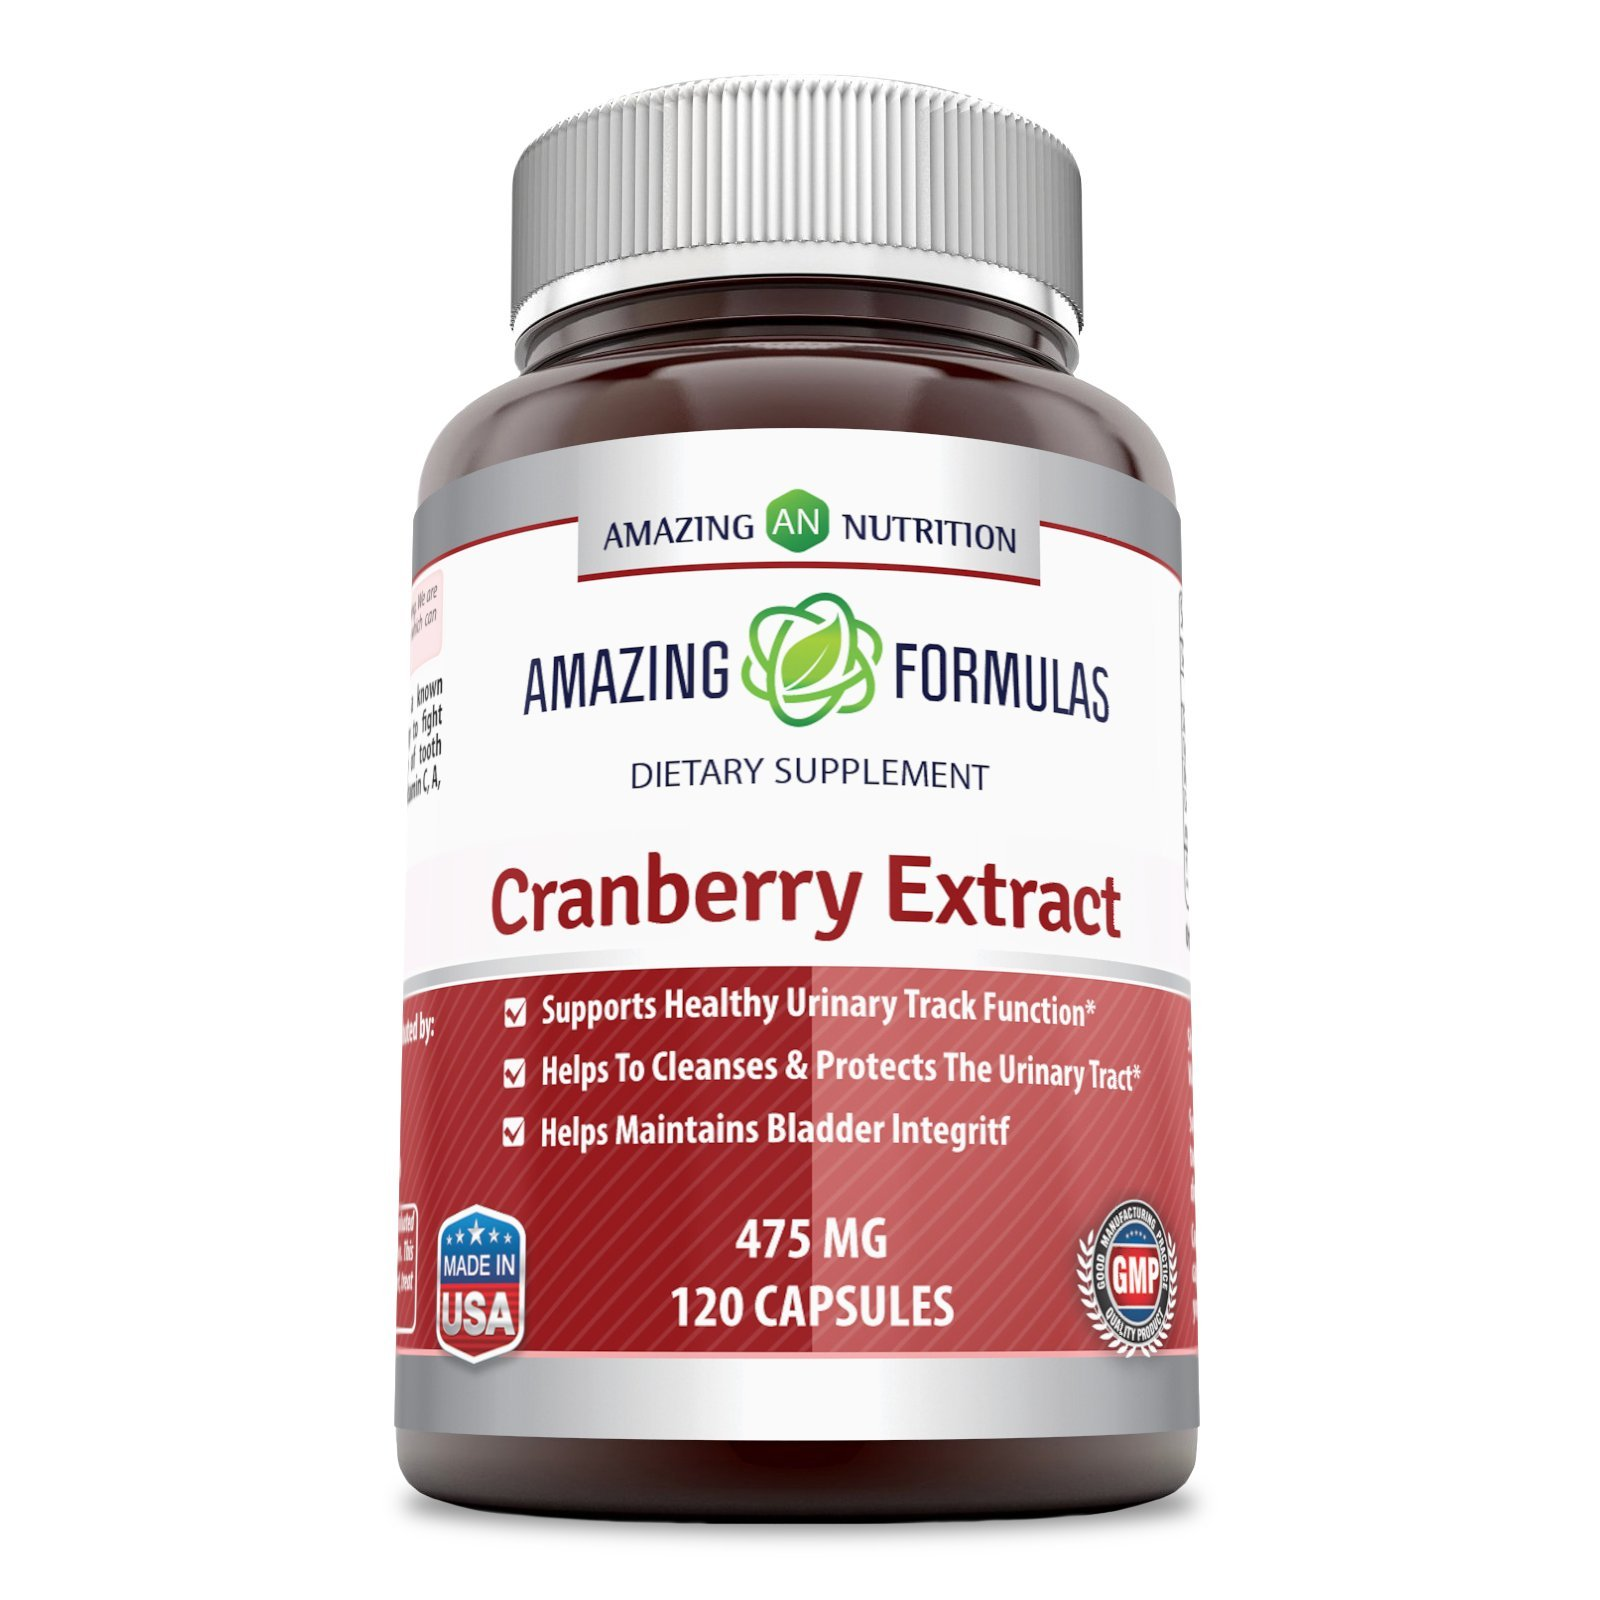 Amazing Nutrition Cranberry 100% Natural Supplement - 475 mg 120 Capsules Capsules Made From 100% Pure Cranvberroes (Vaccinium Macrocarpon)- Supports Healthy Urinary Track Function